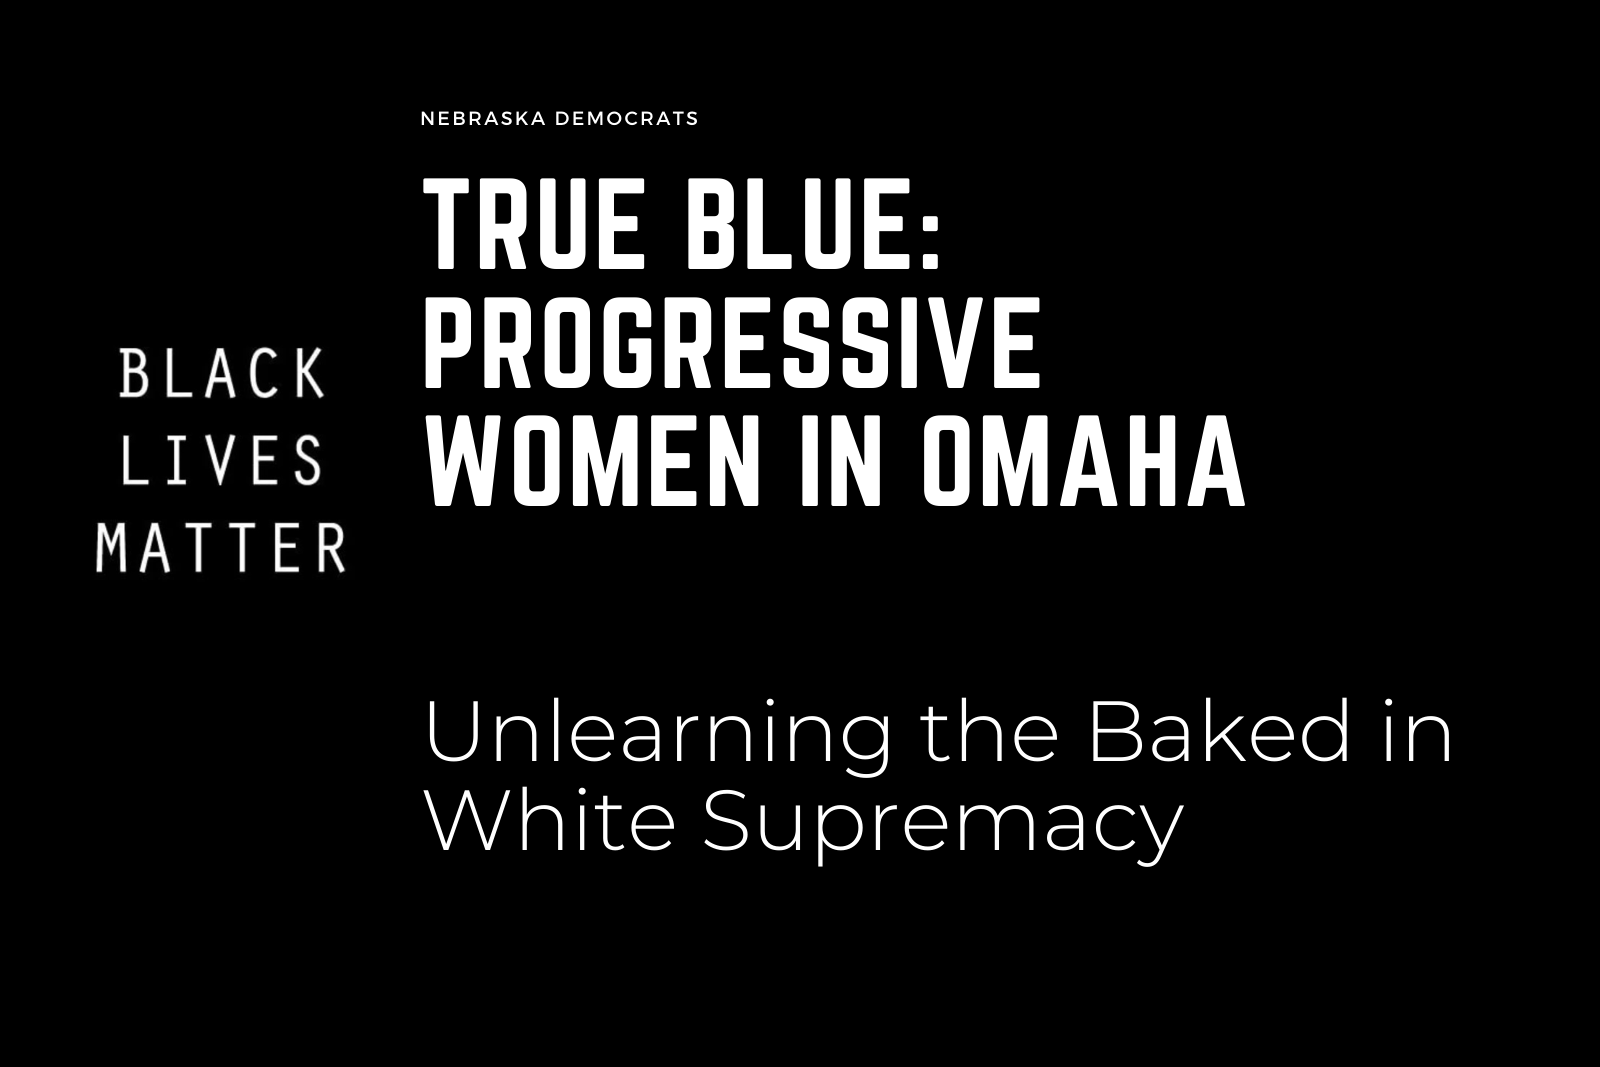 Unlearning the baked in white supremacy